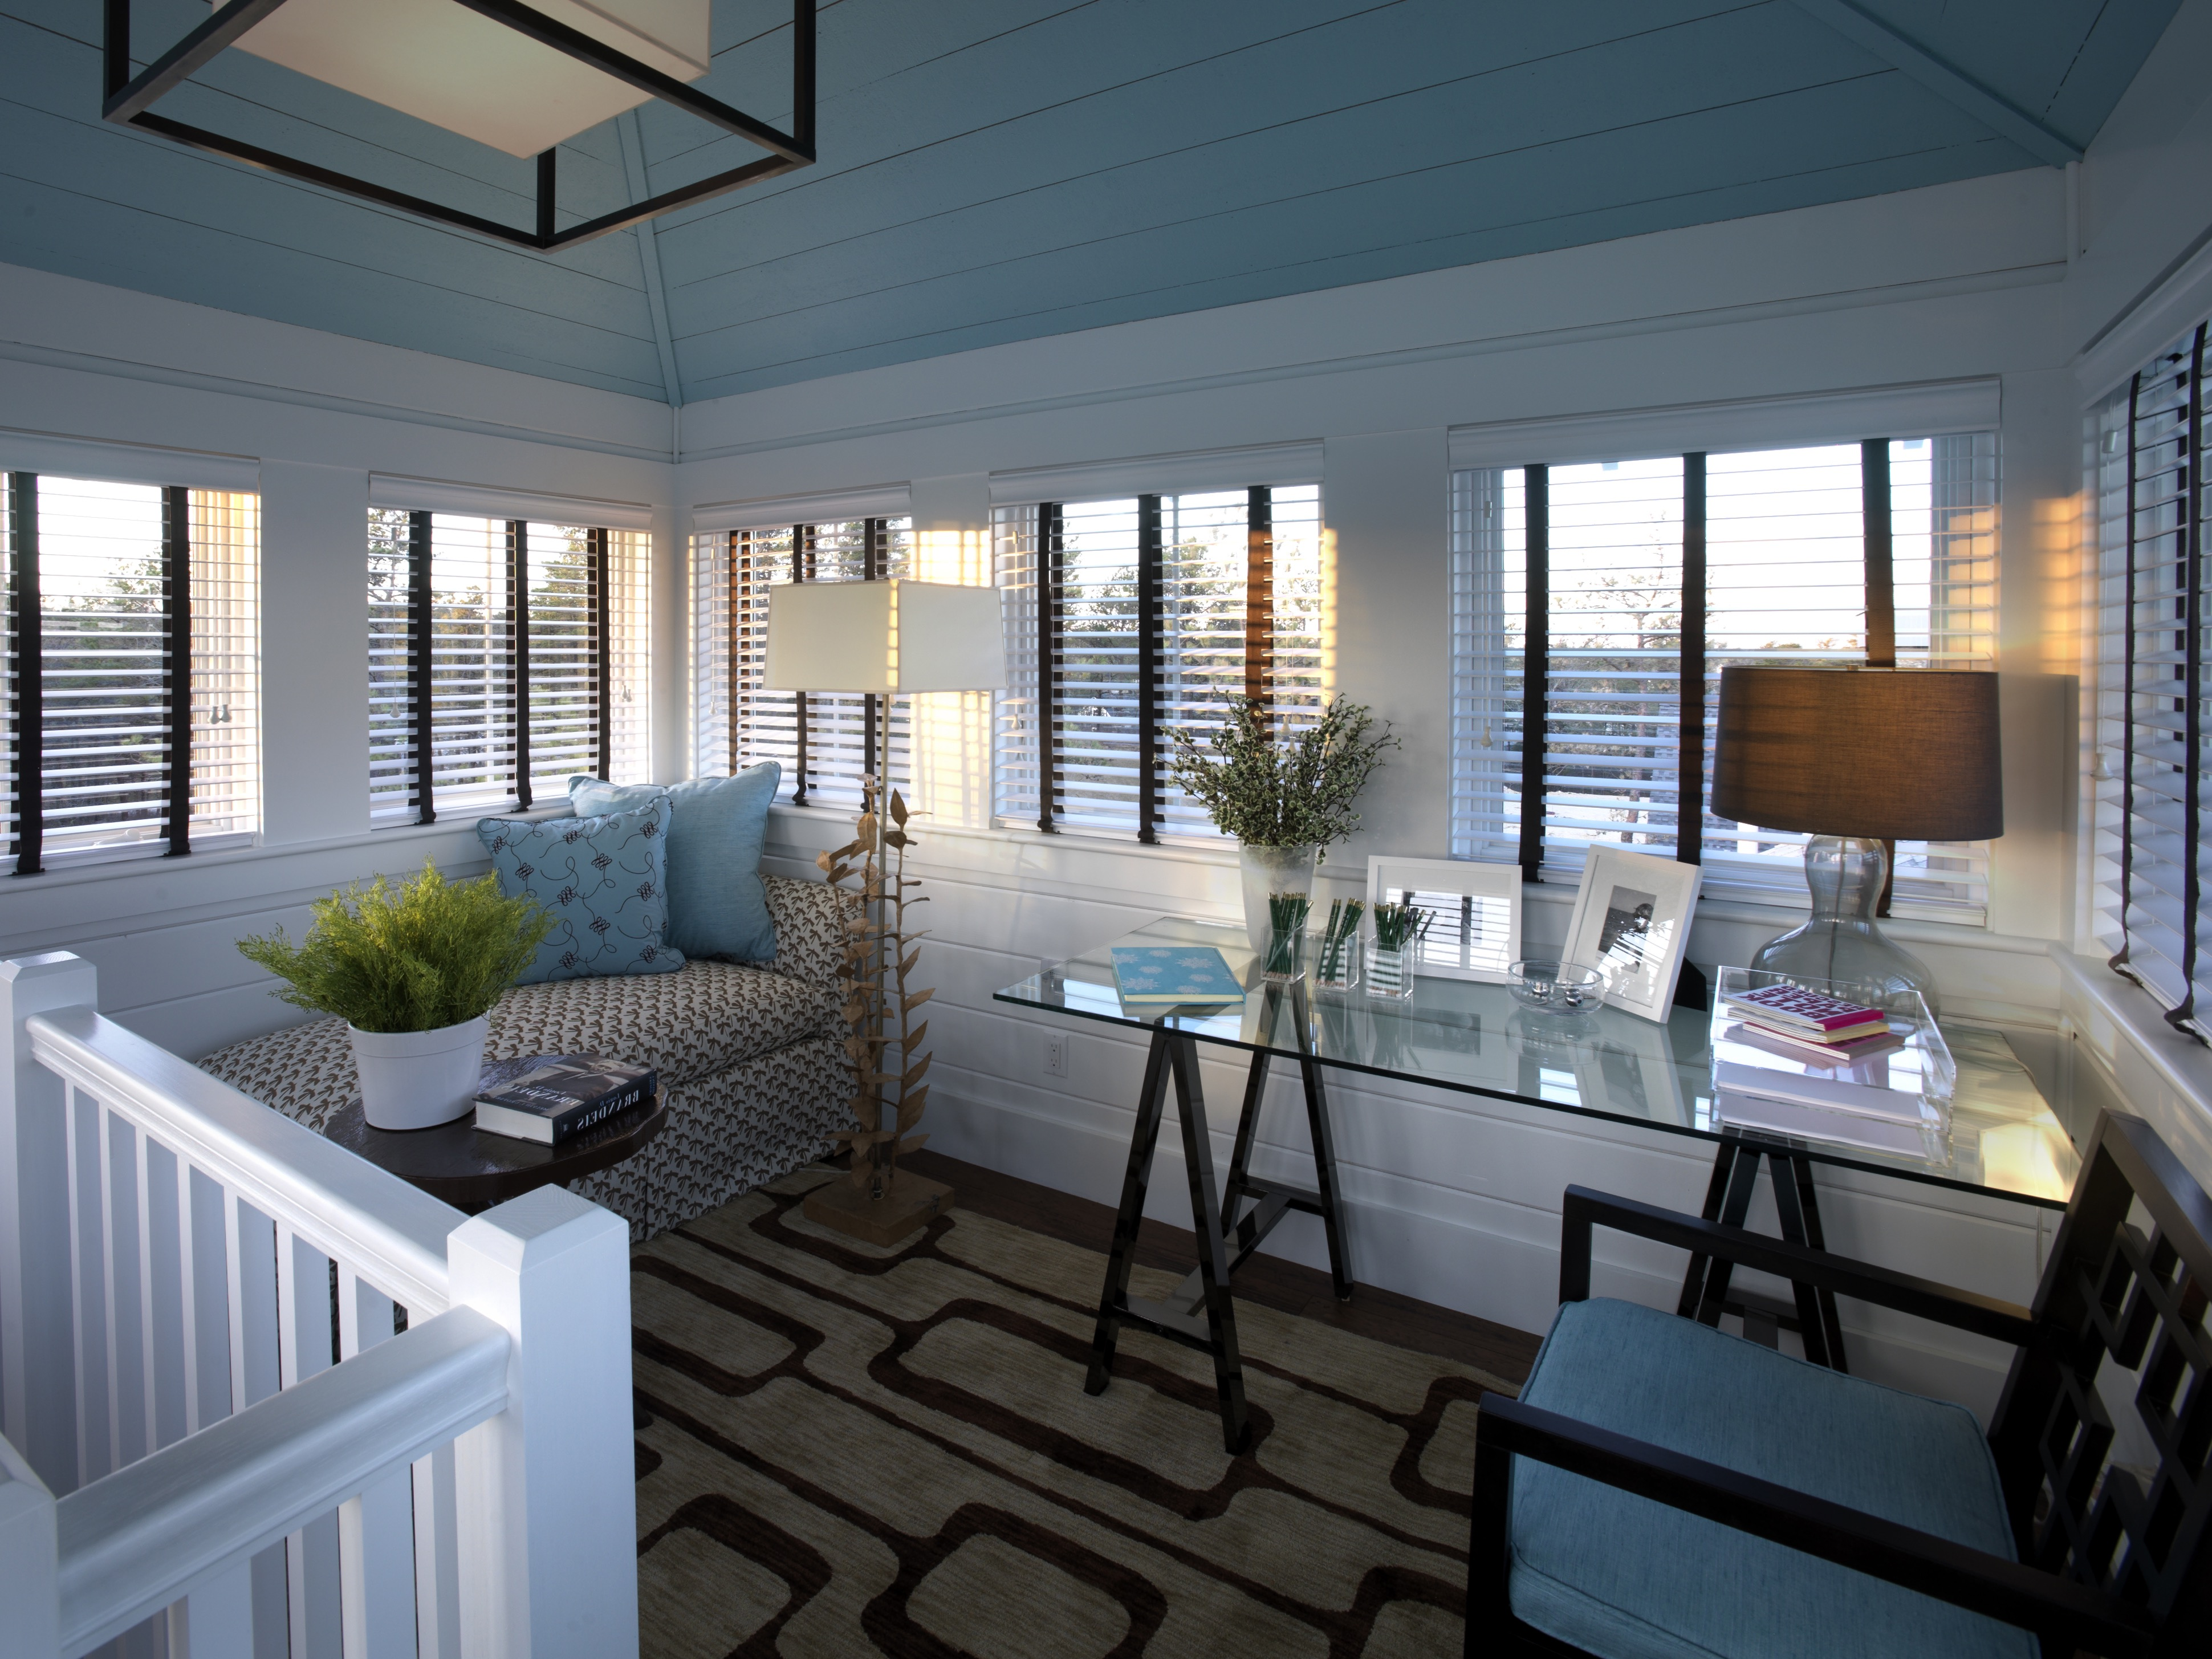 Smart Decor For Modern Home Workplace In Small Space (View 45 of 50)